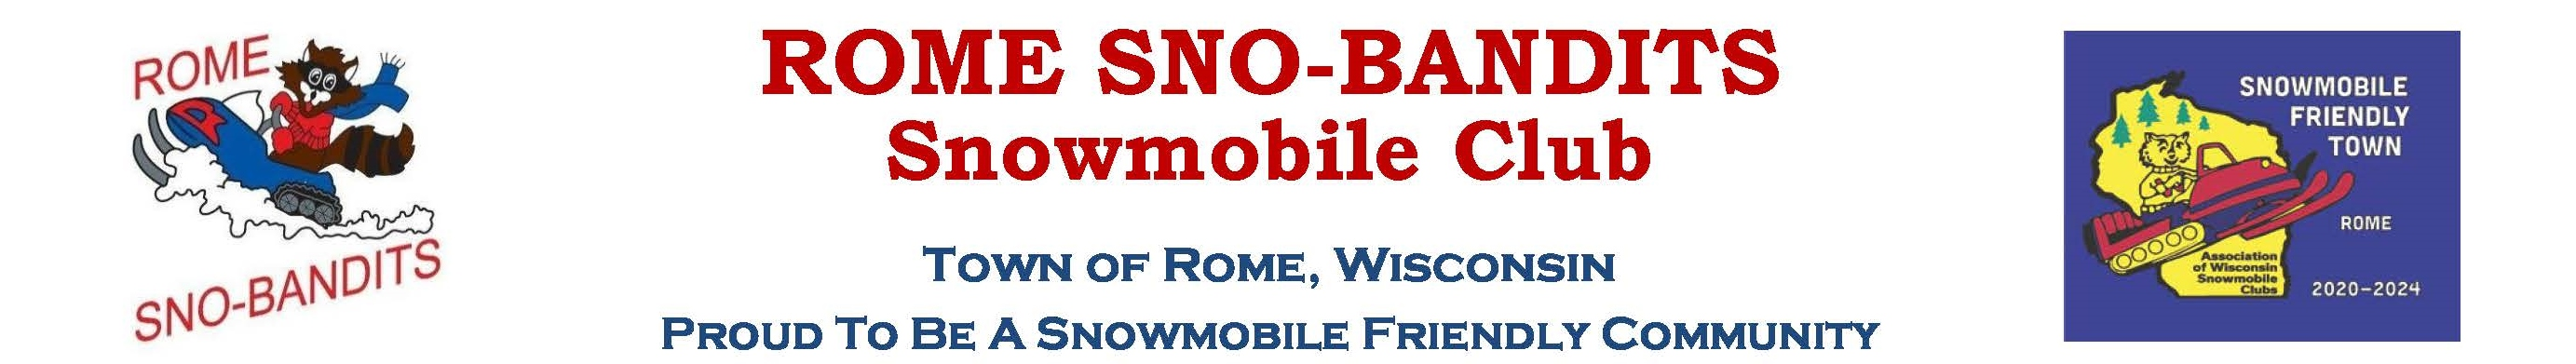 Rome Sno-Bandits Snowmobile Club